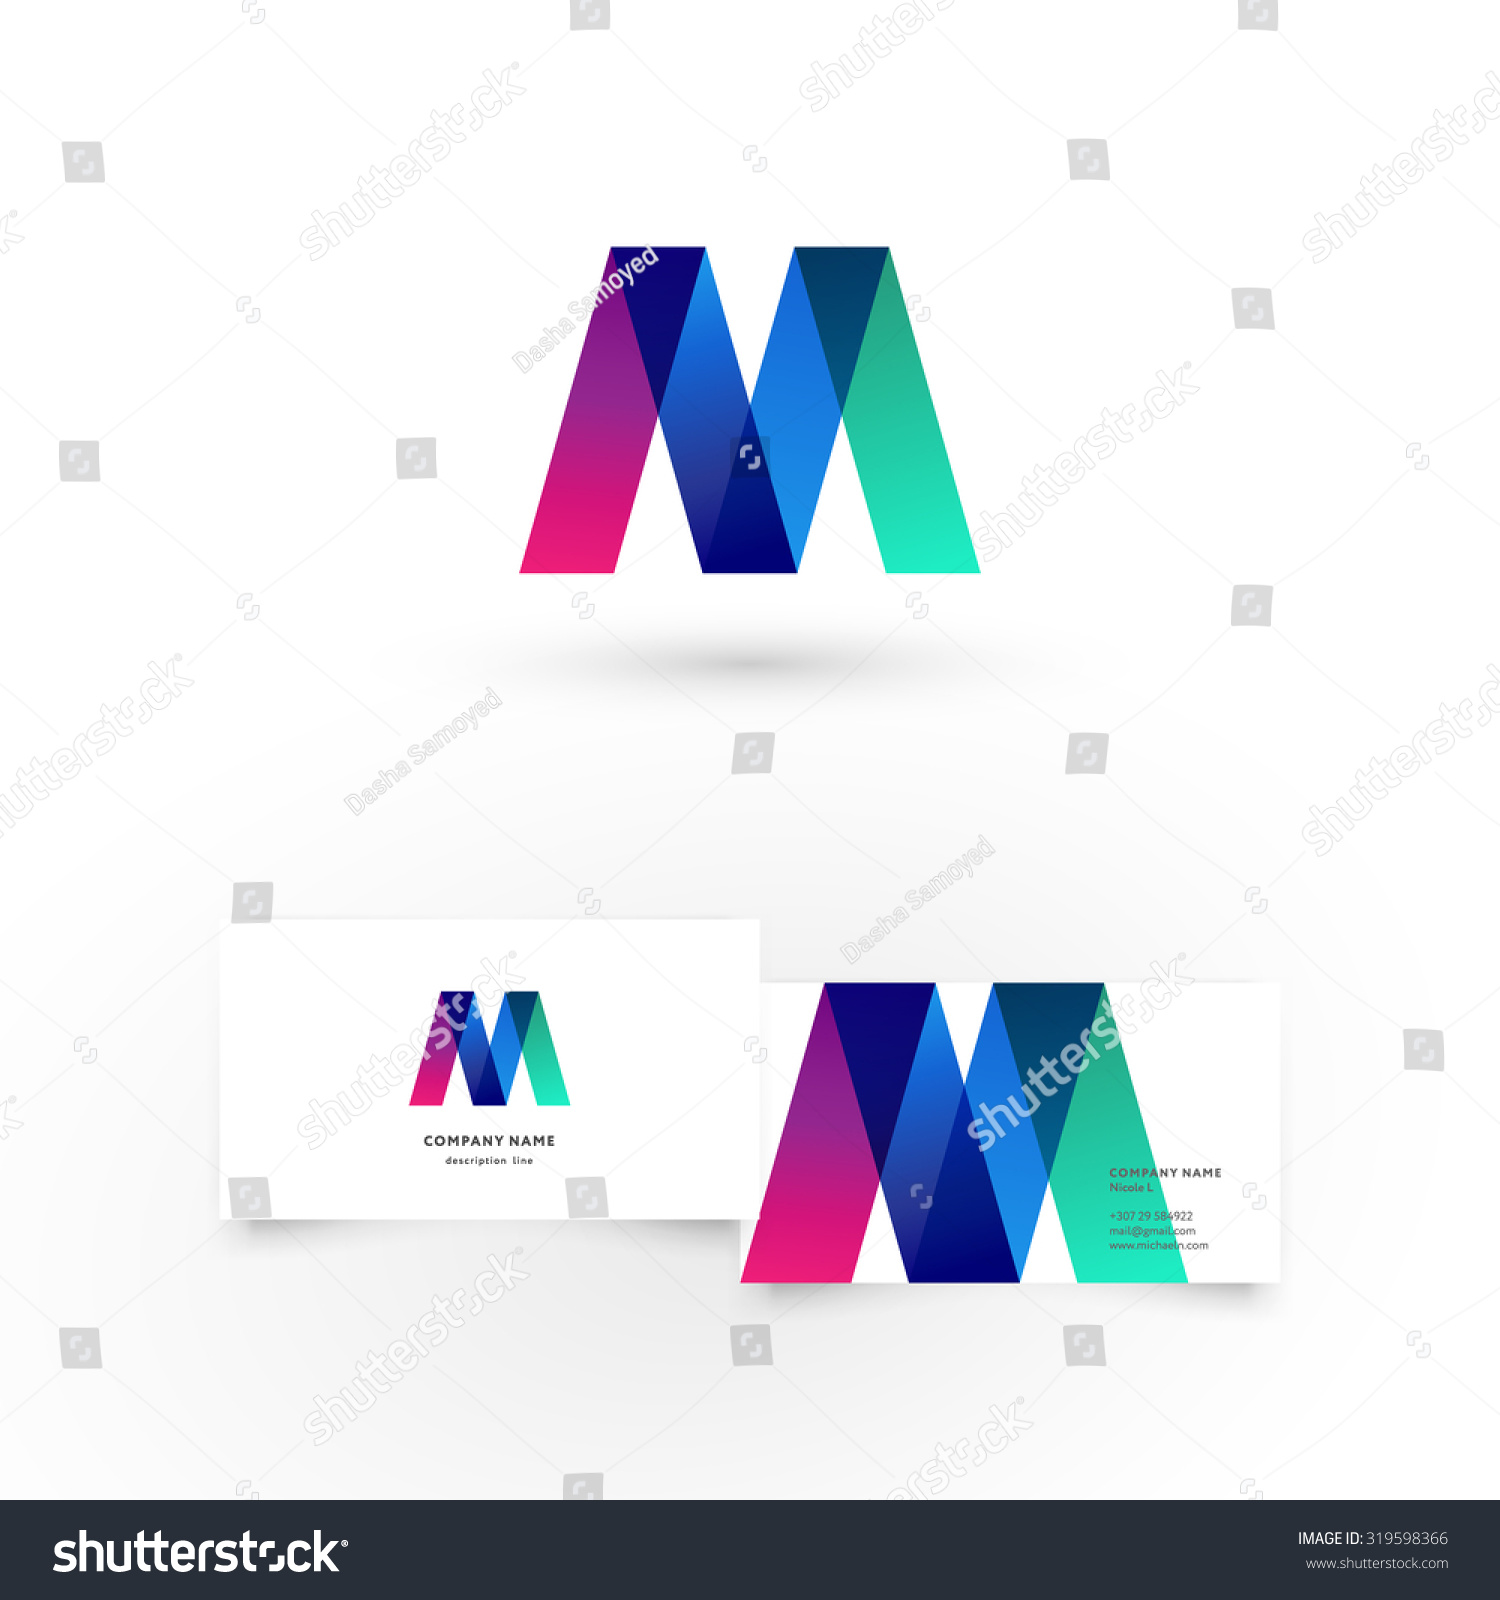 Triangle shaped business cards gallery free business cards inspirational pictures of triangle shaped business cards modern icon design m shape element stock vector magicingreecefo magicingreecefo Choice Image